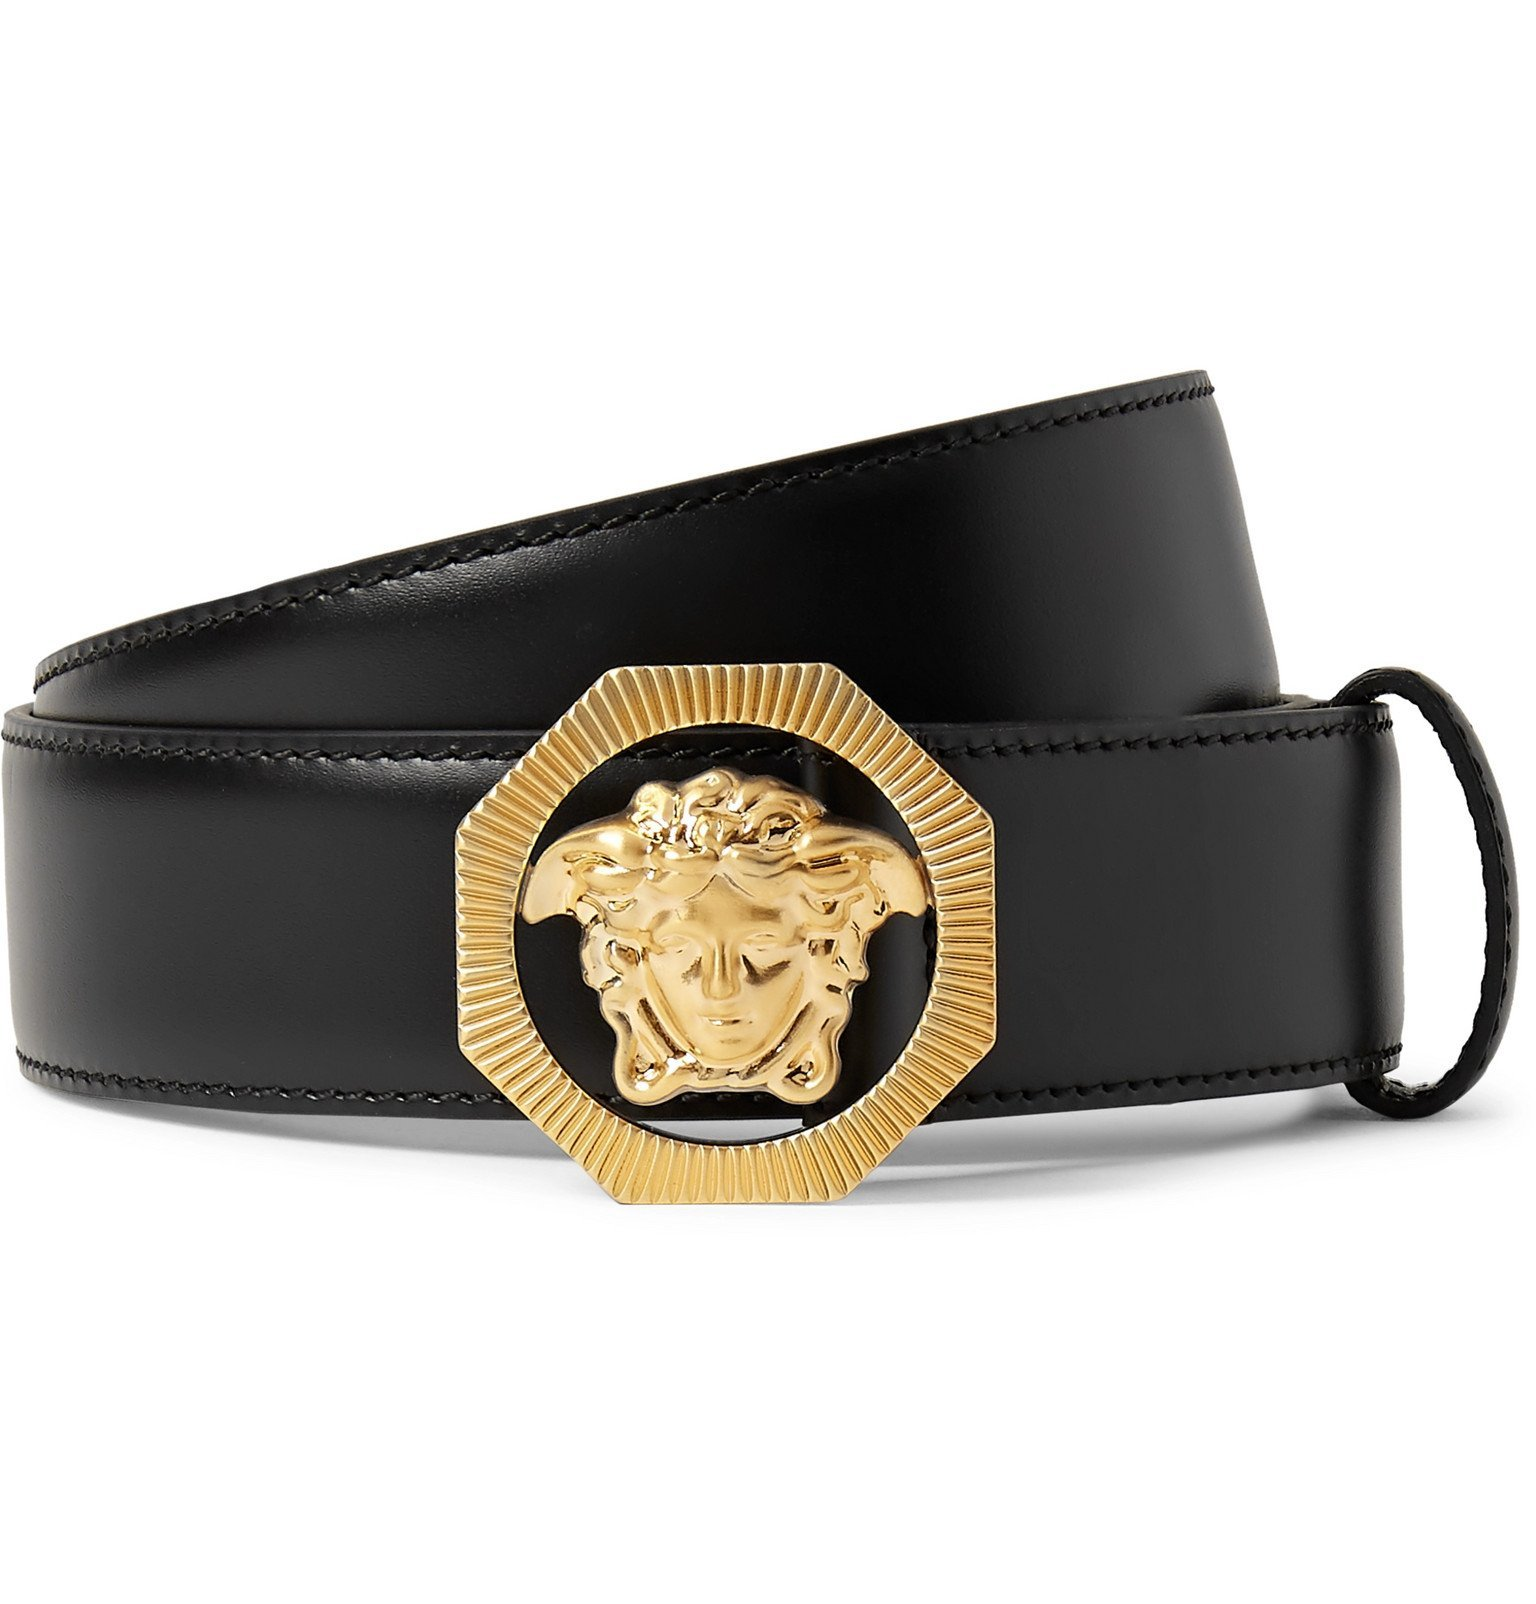 Versace - 3cm Black Leather Belt - Black